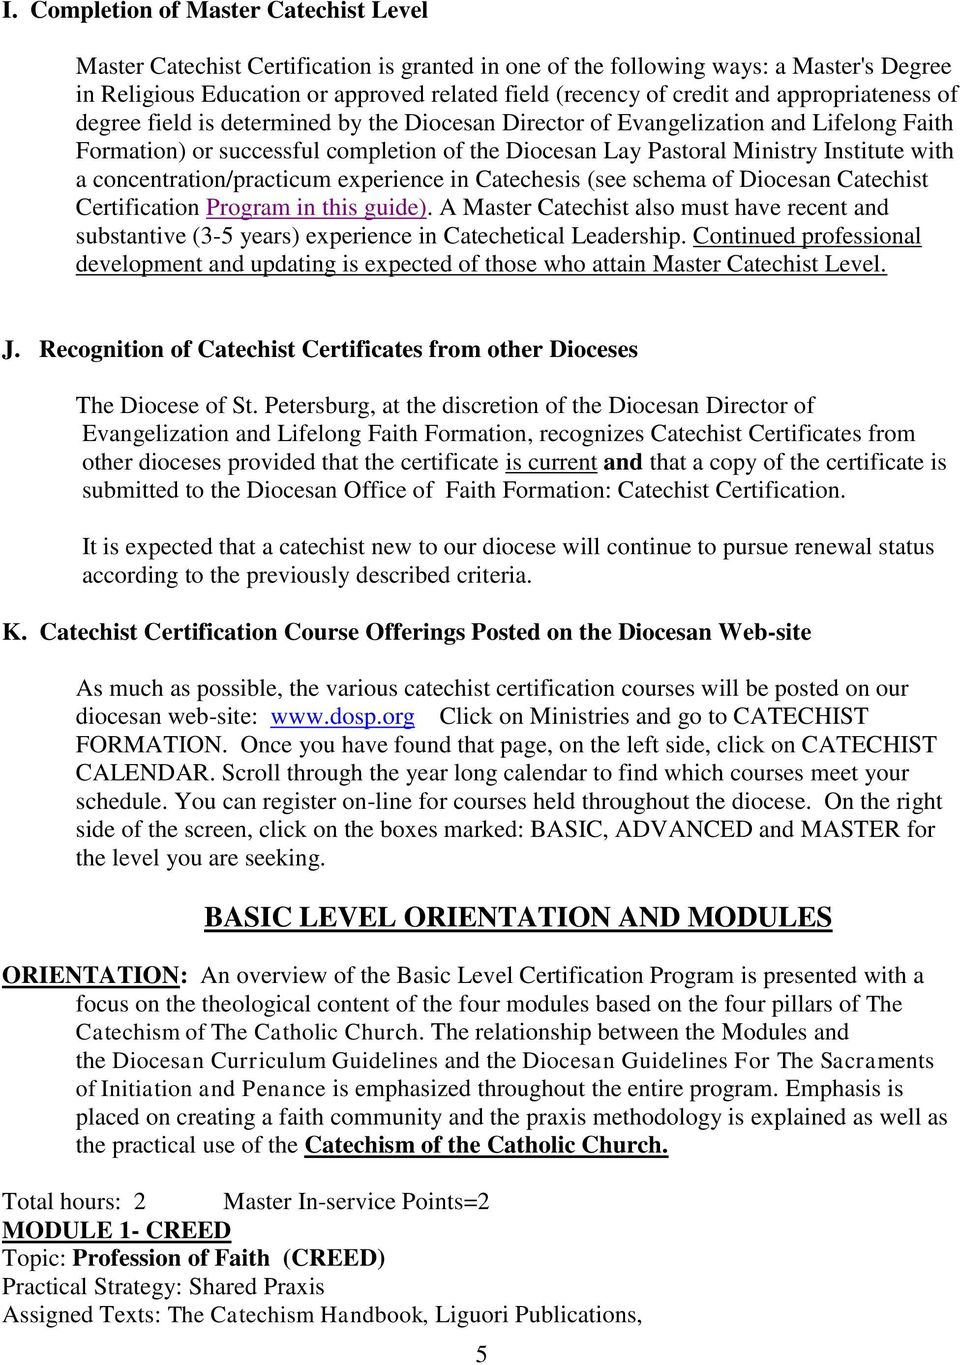 with a concentration/practicum experience in Catechesis (see schema of Diocesan Catechist Certification Program in this guide).